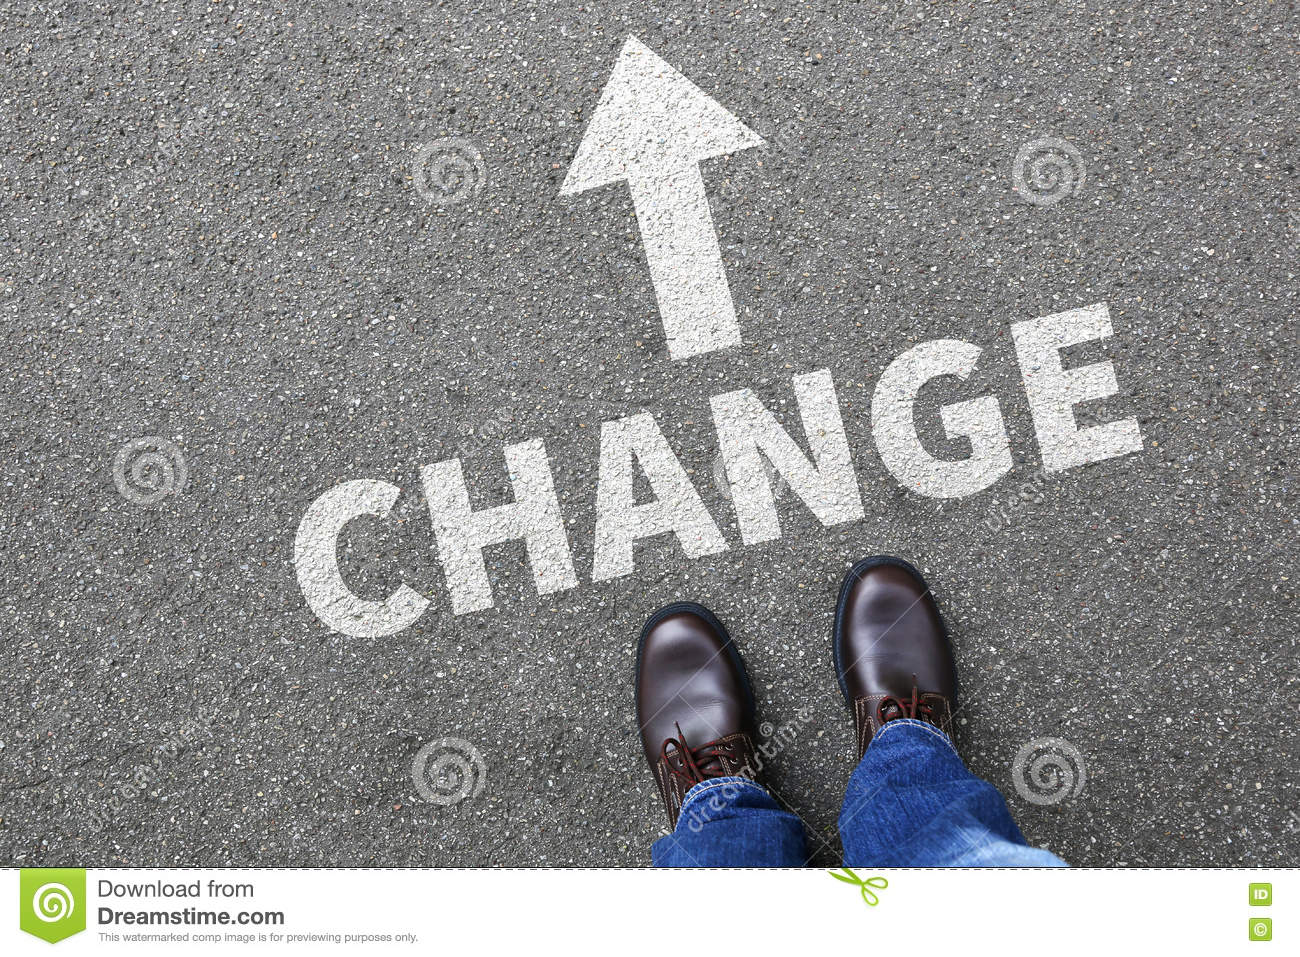 Change changing work job life changes concept